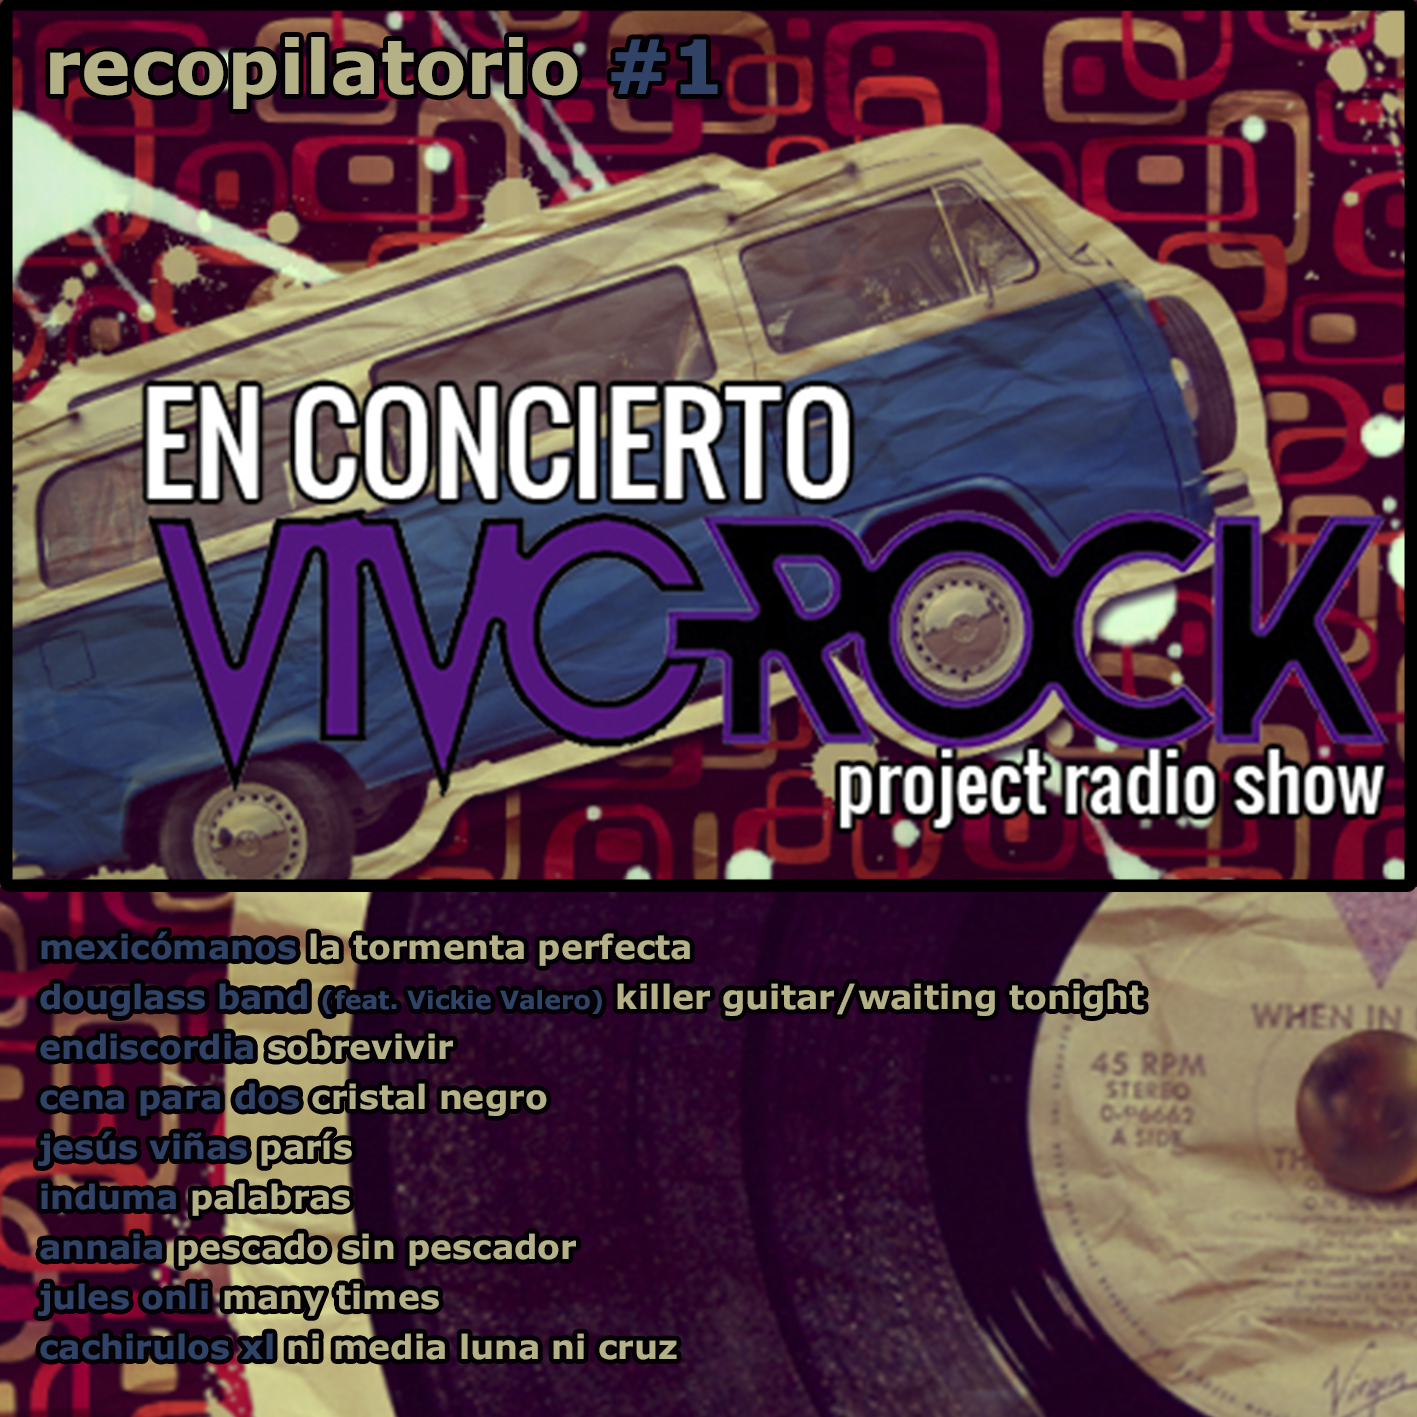 Vivo Rock En Concierto -Project Radio Show Álbum recopilatorio #1